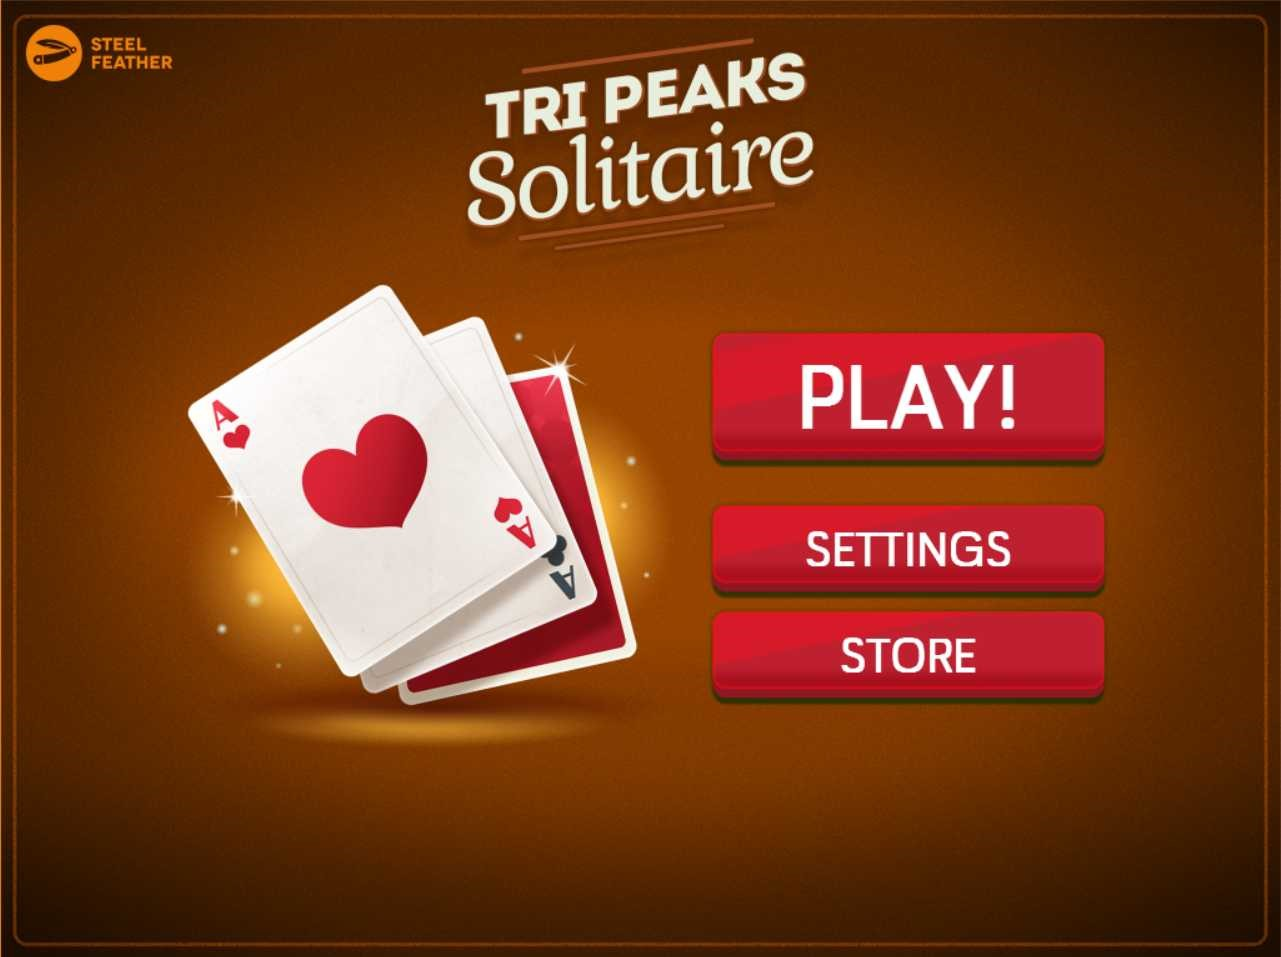 It's possible to update the information on Tri Peaks Solitaire or report it  as discontinued, duplicated or spam.